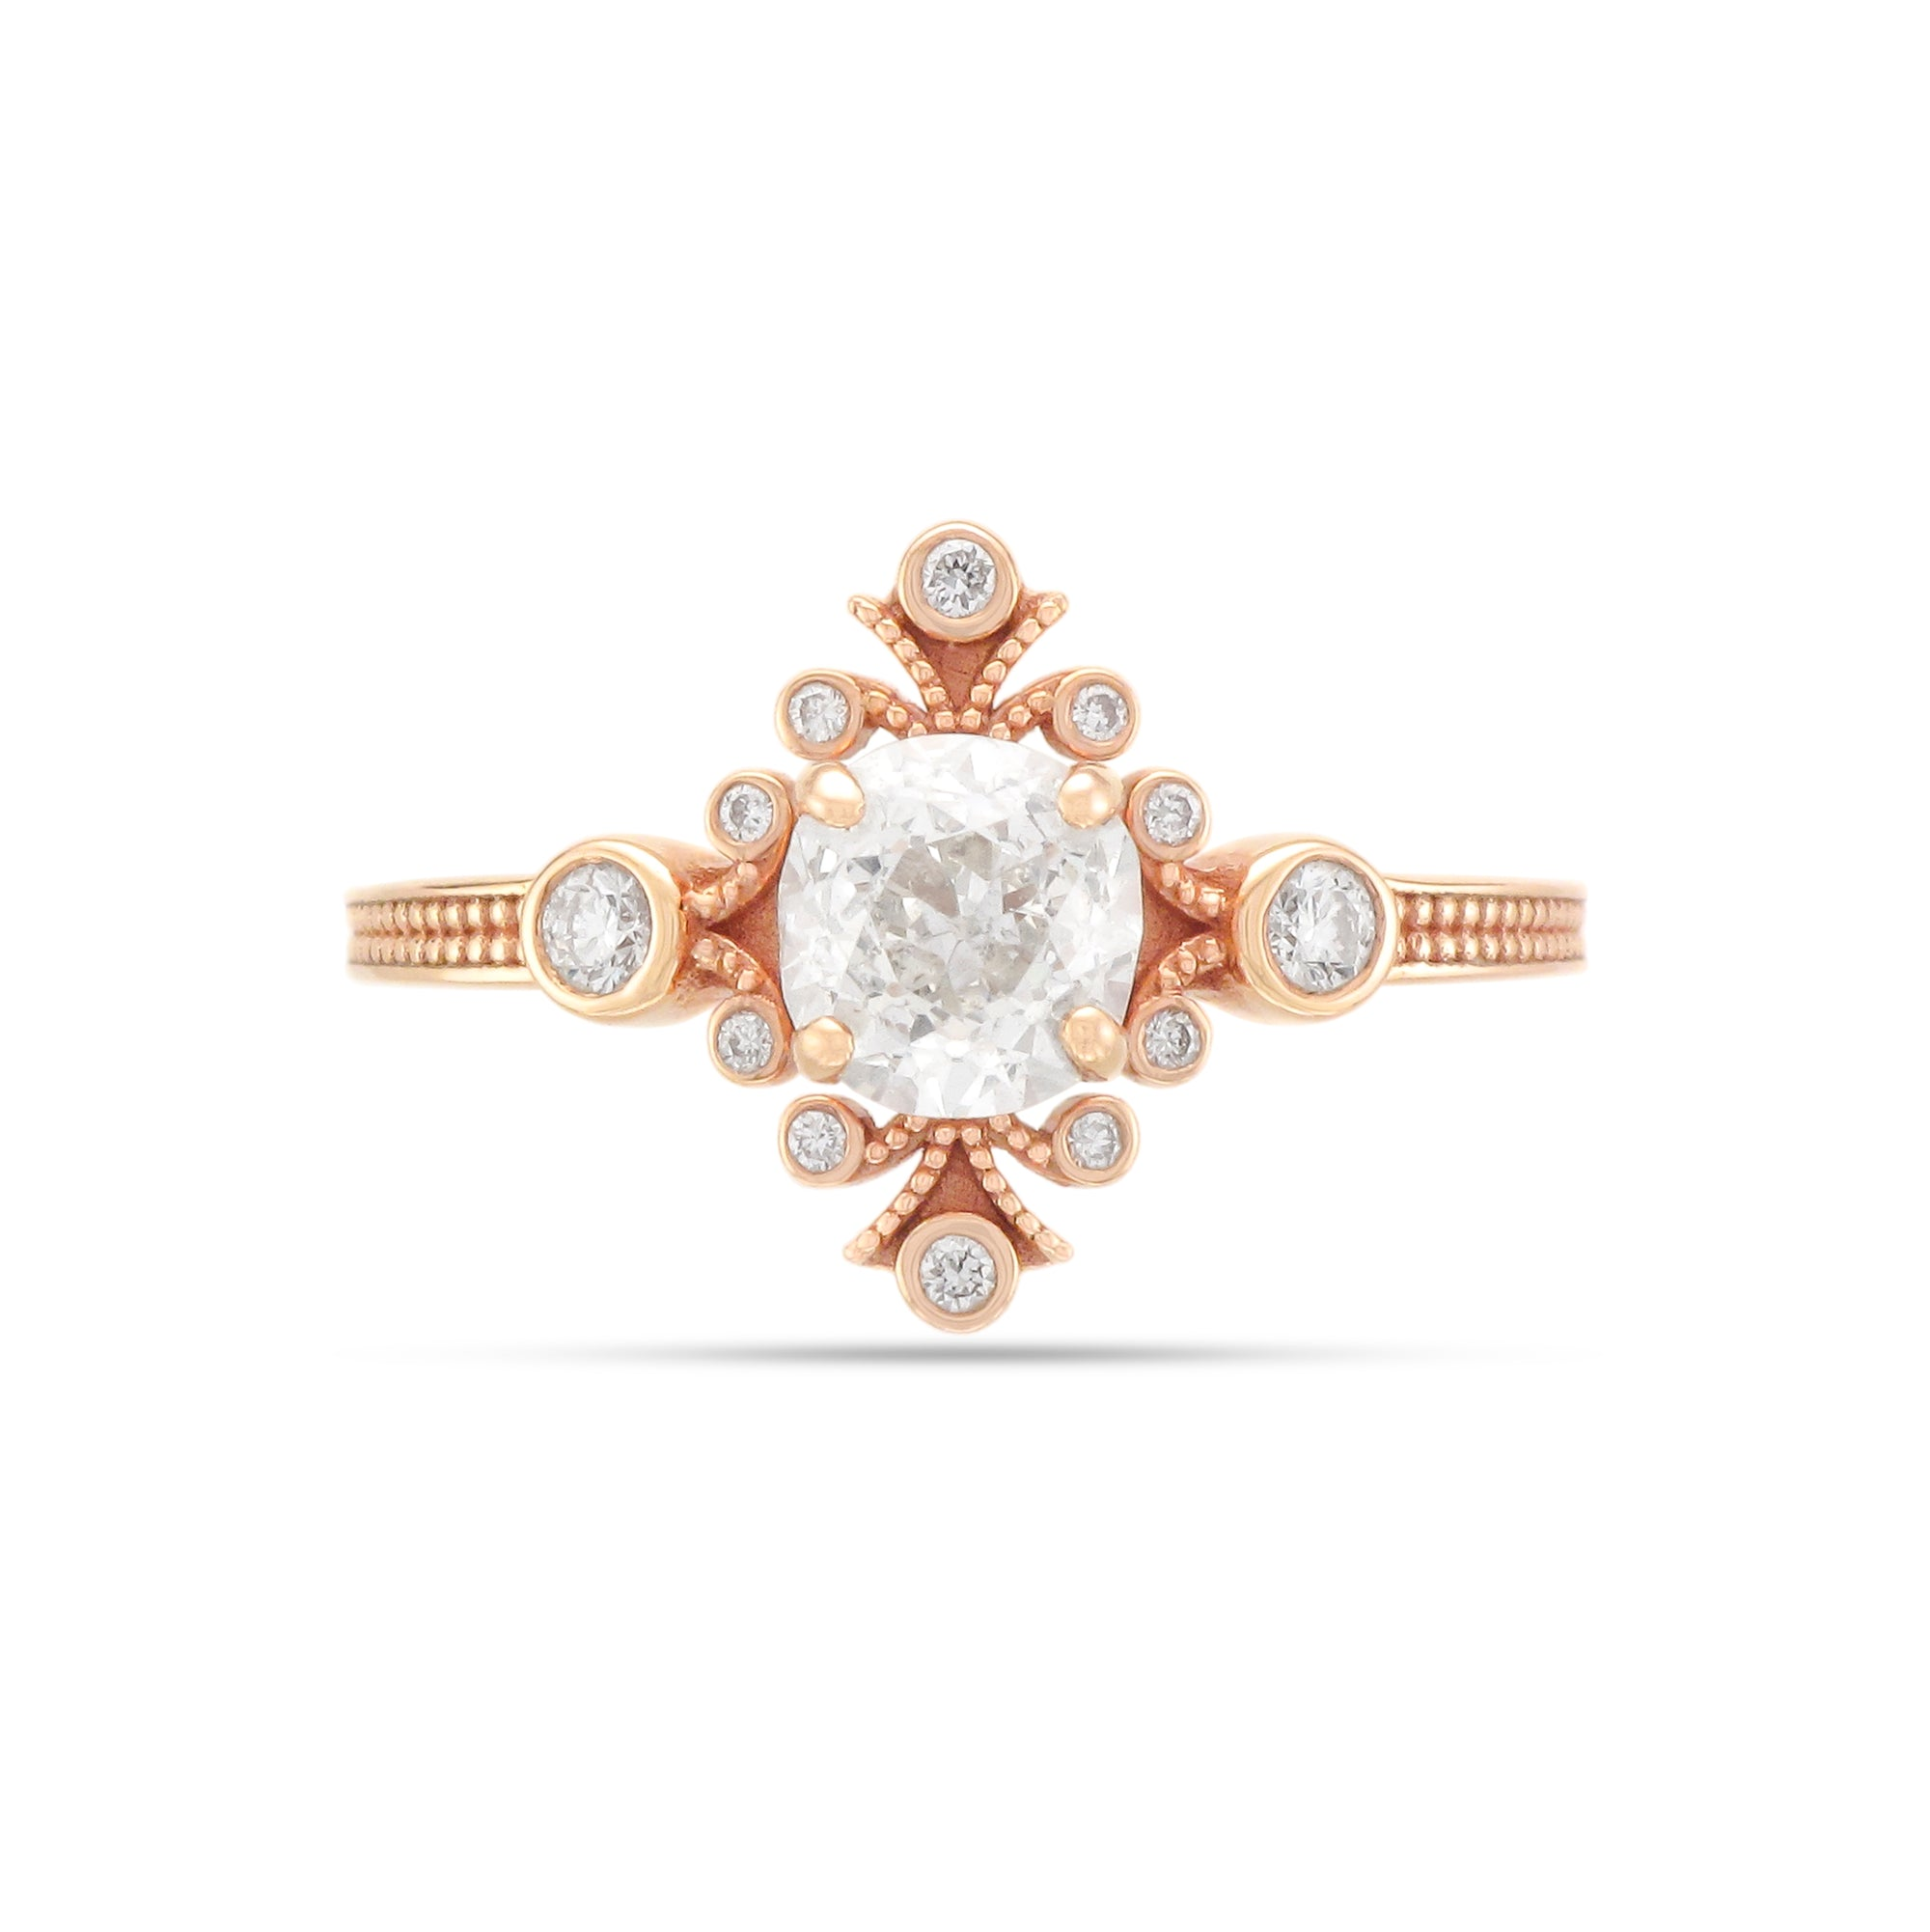 0.99ct Cushion-Cut Vintage Inspired Diamond Engagement Ring